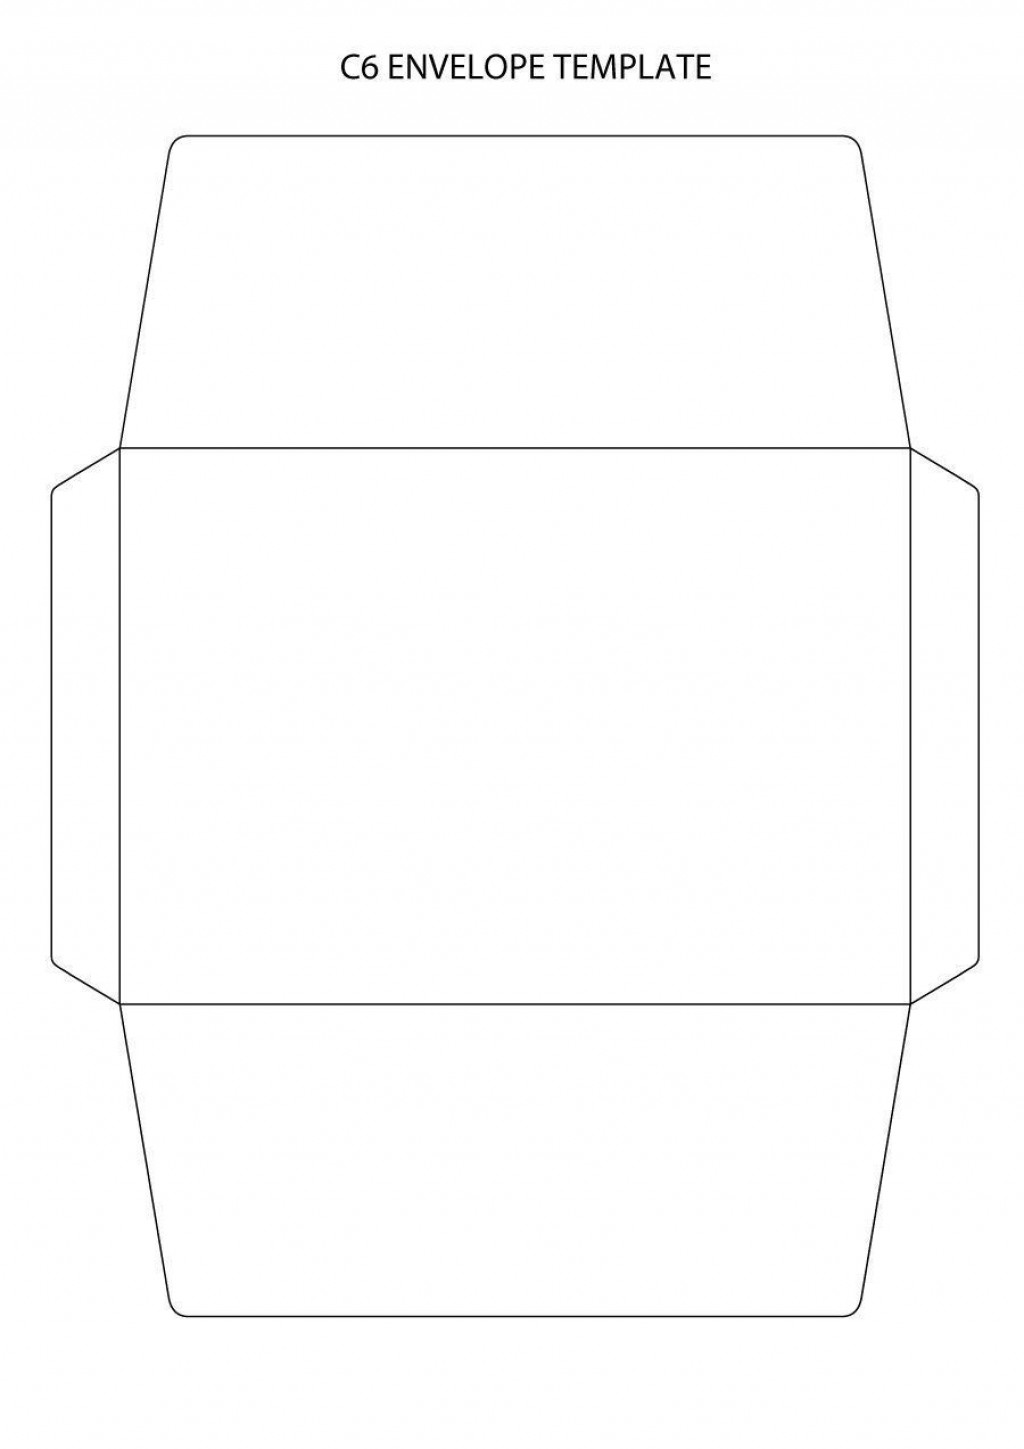 002 Outstanding 10 Envelope Template Word High Definition  Size Microsoft #10 Double WindowLarge